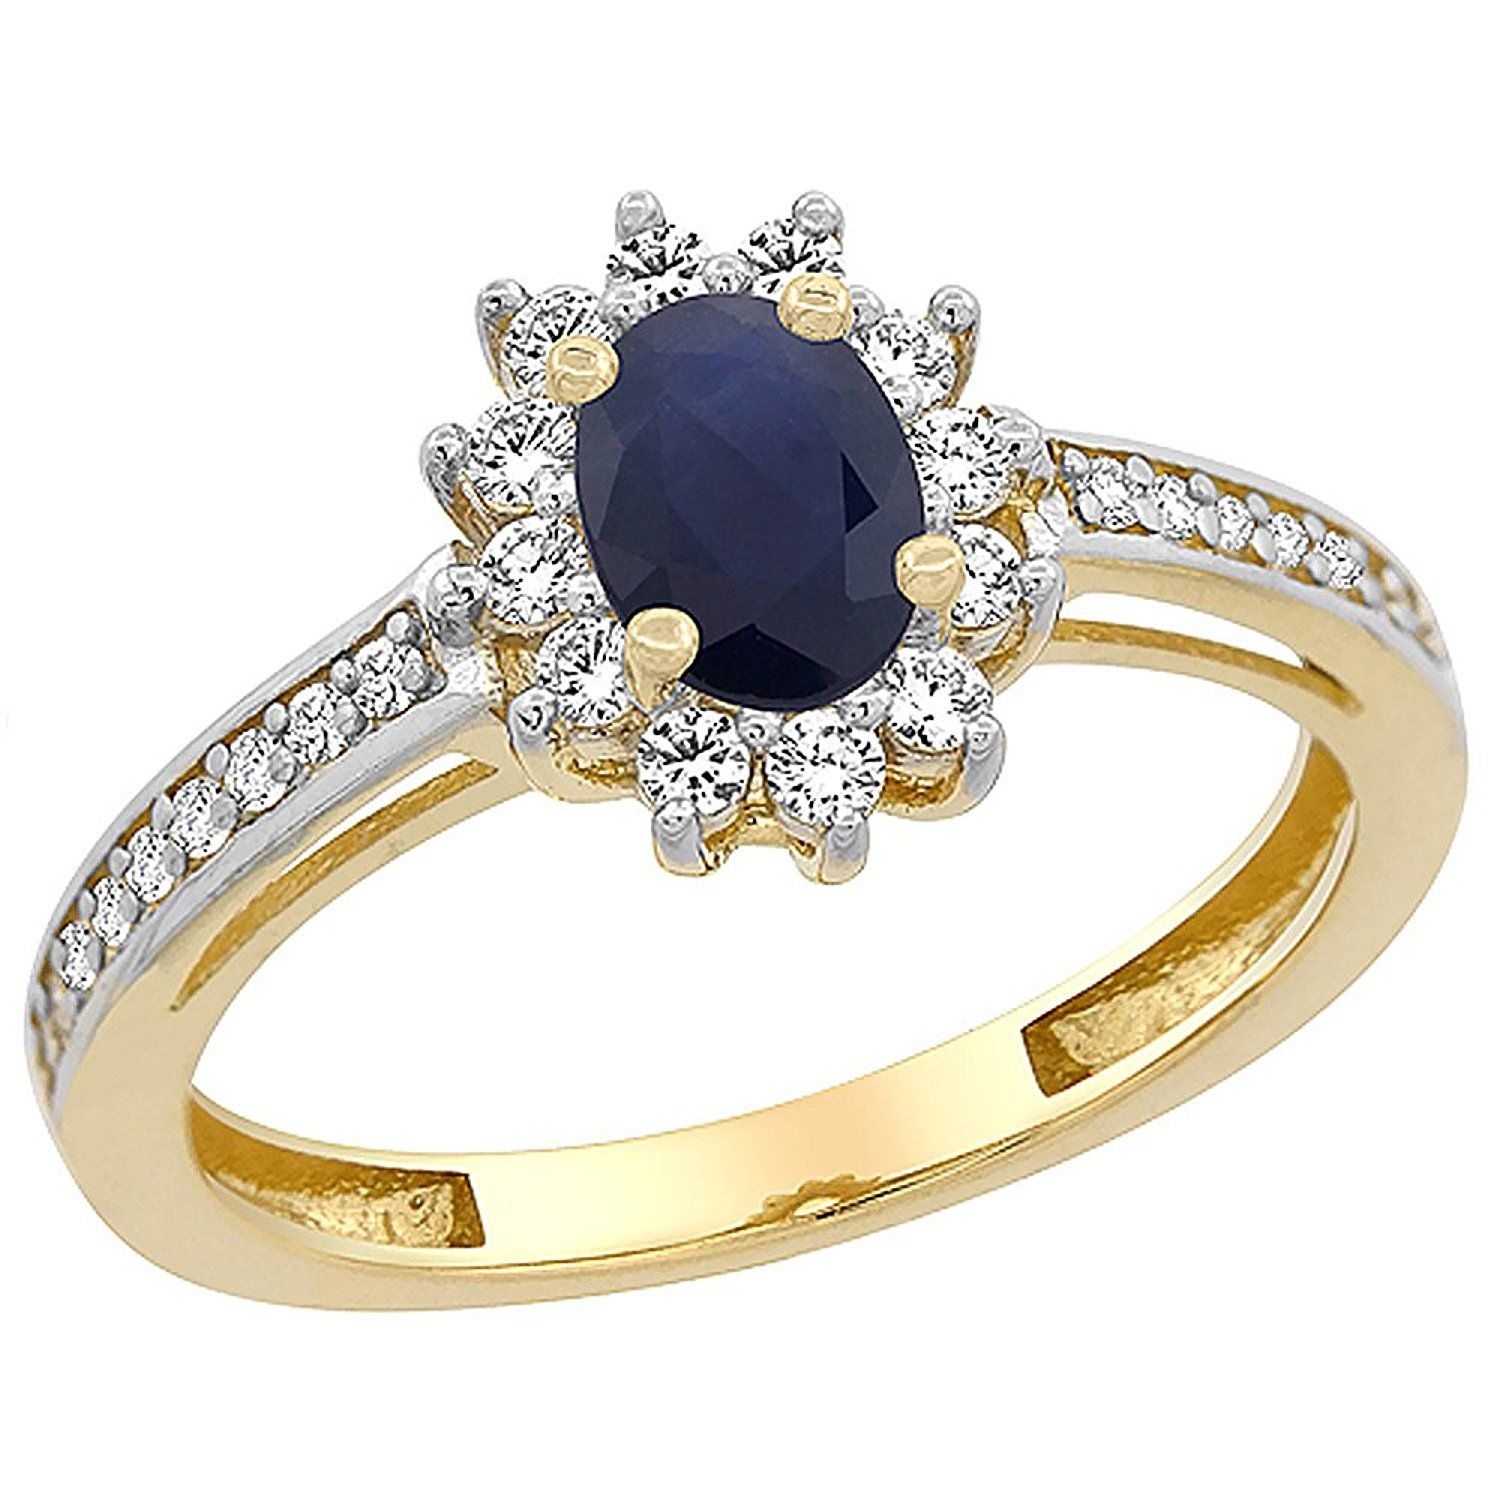 Women Gold Oval Moonstone Ring Rhinestone Diamond Cocktail 3 Colors Size 5-10